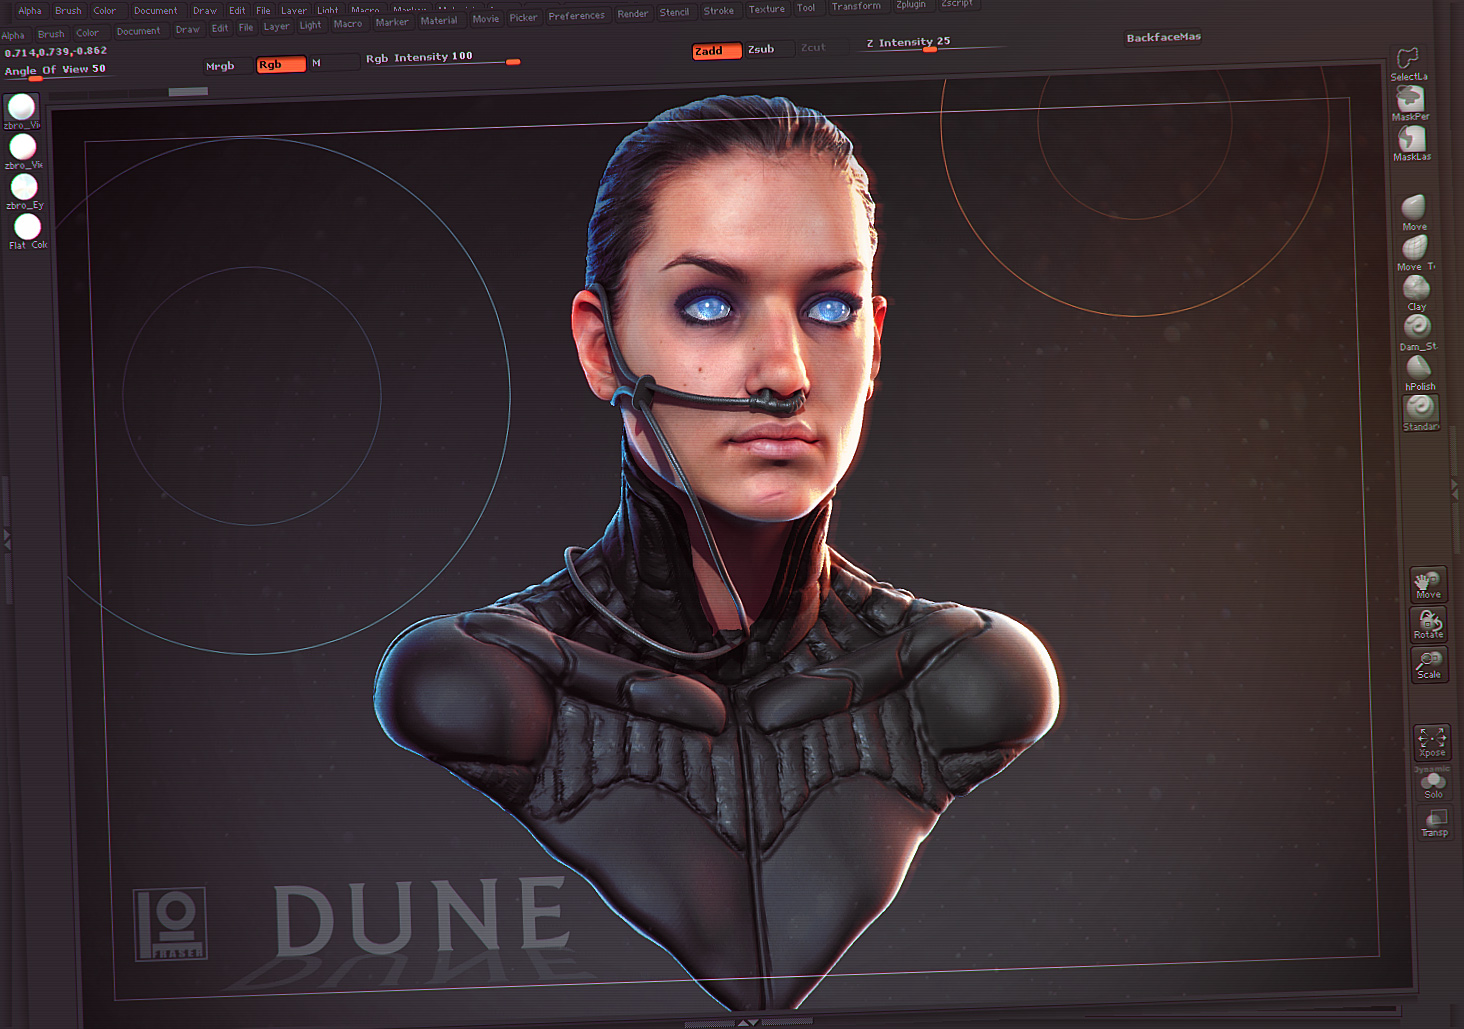 every_now_and_then_i_remember_how_much_i_love_dune_by_duncanfraser-d702pod.jpg